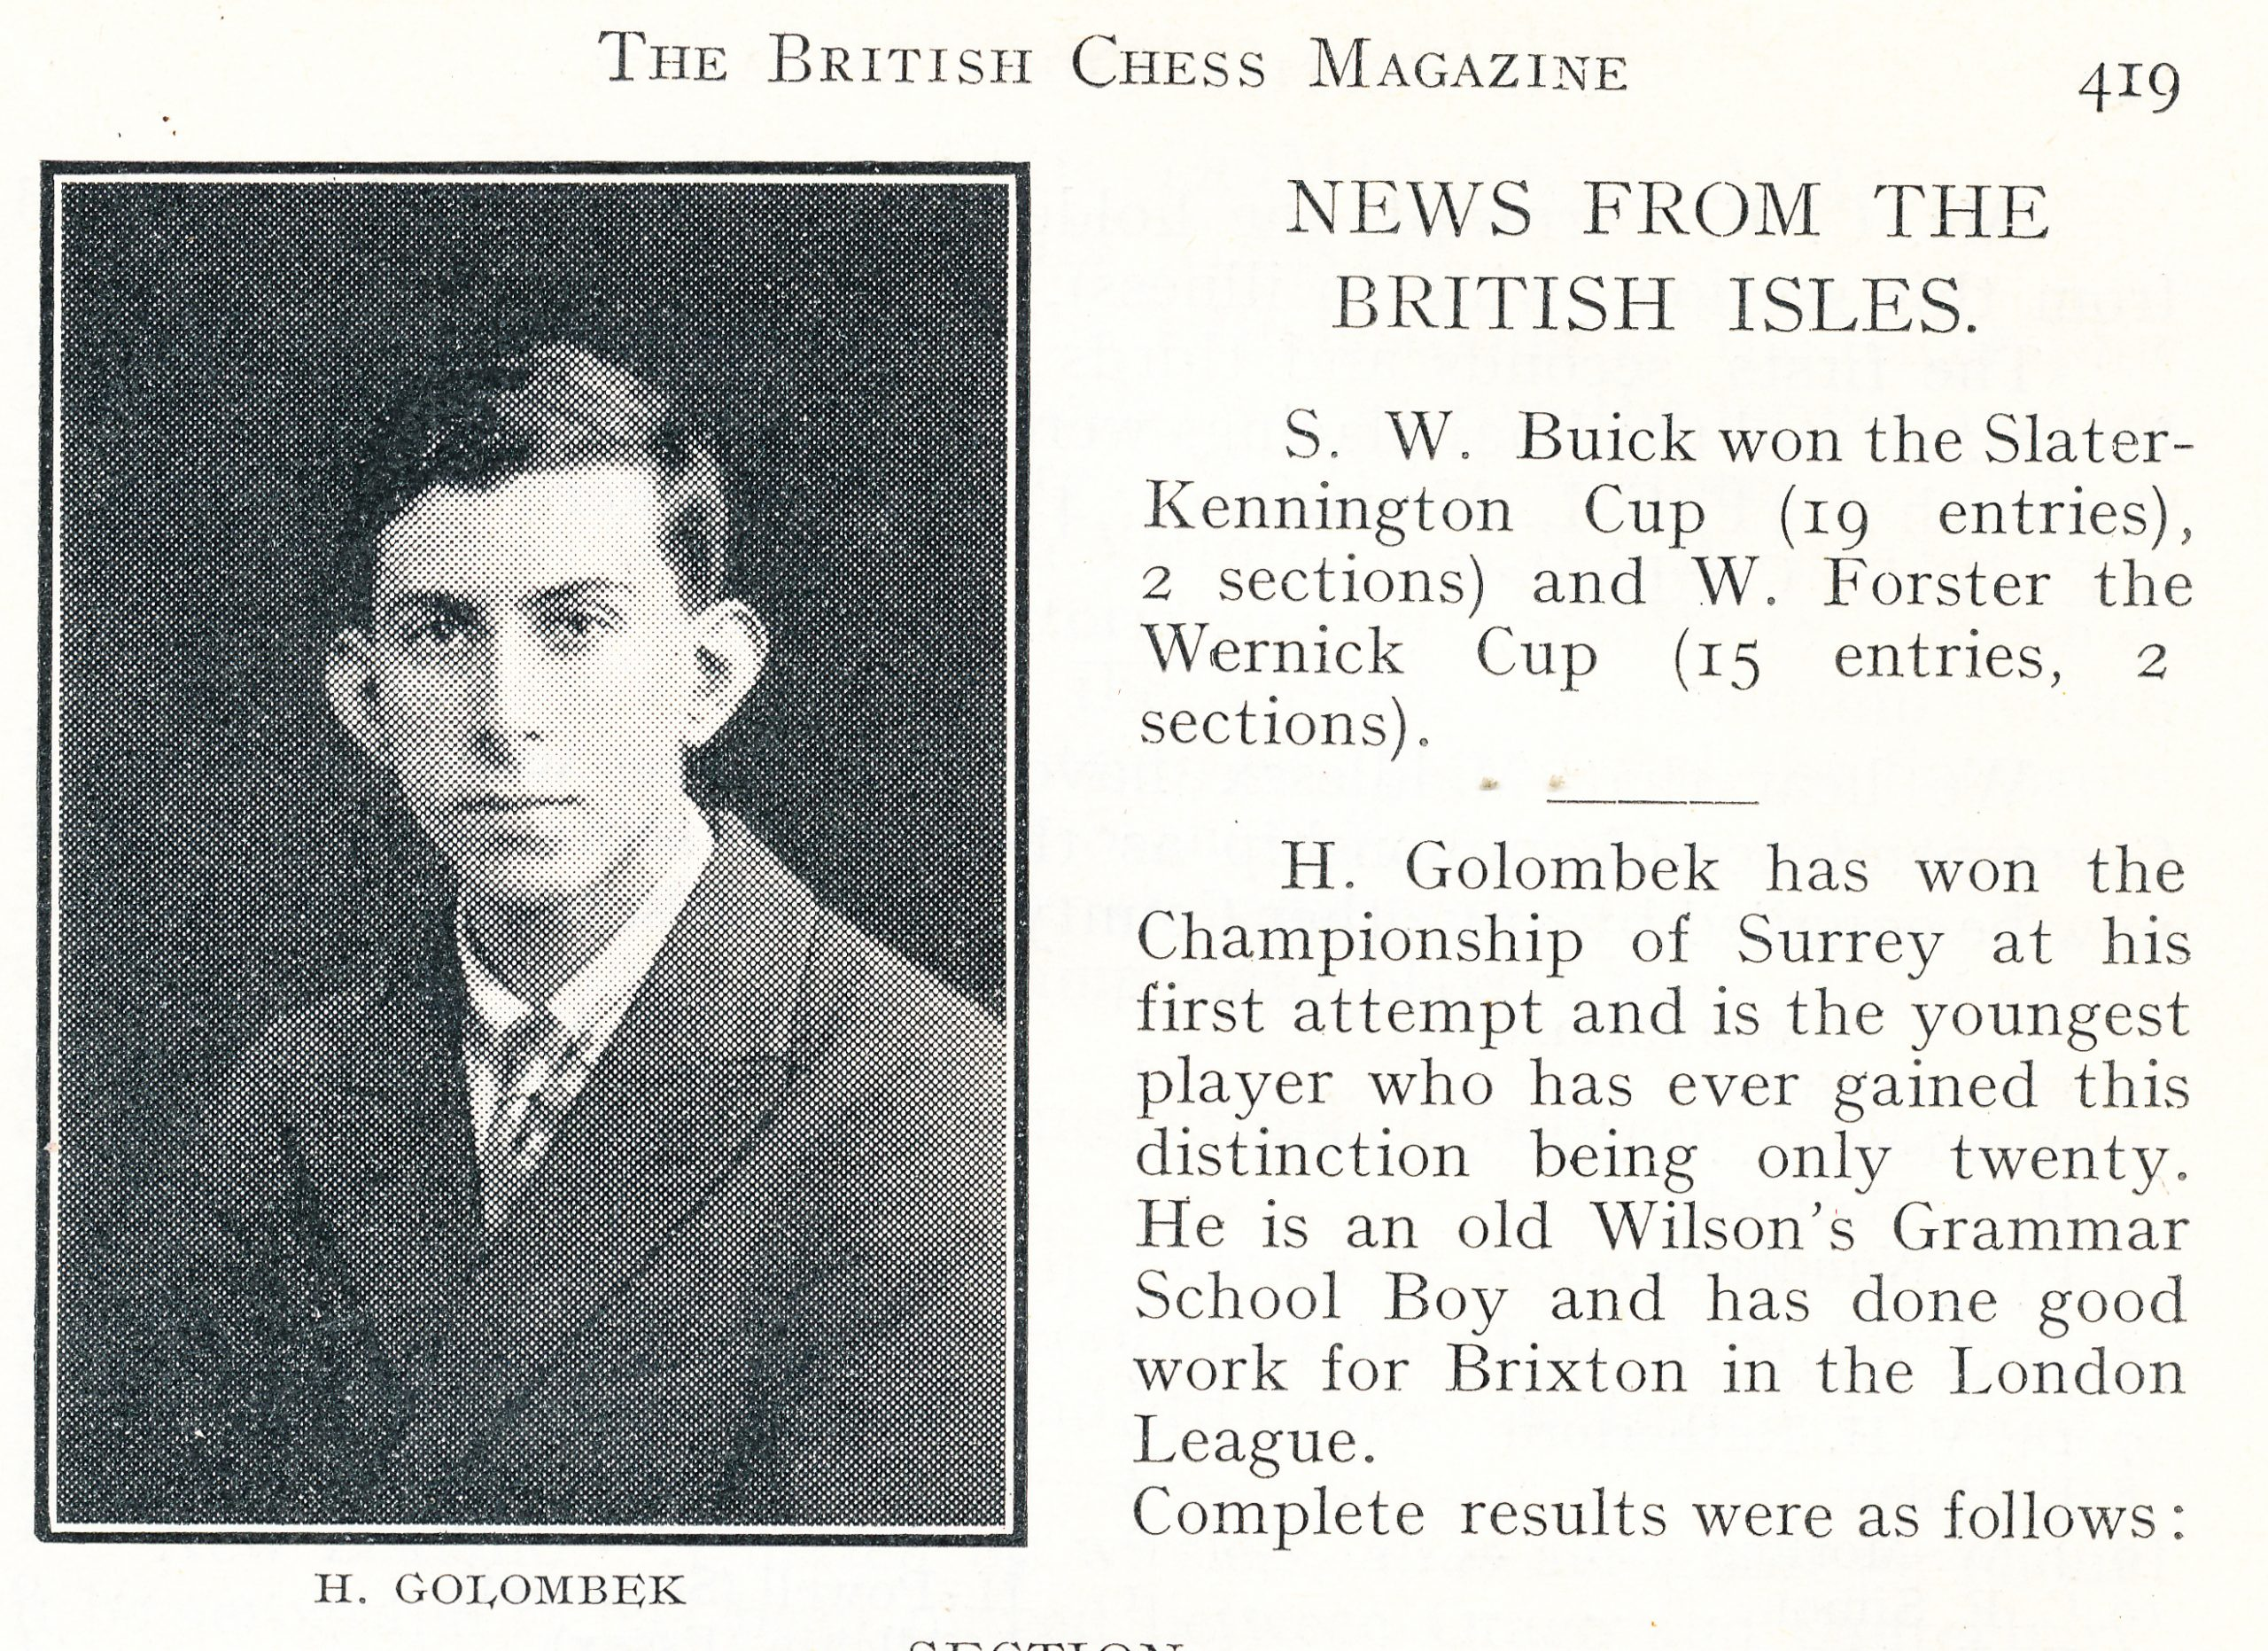 Harry Golombek, aged 20, becomes the youngest winner of the Surrey Challenge Cup in 1931. British Chess Magazine 1931, September, page 419.